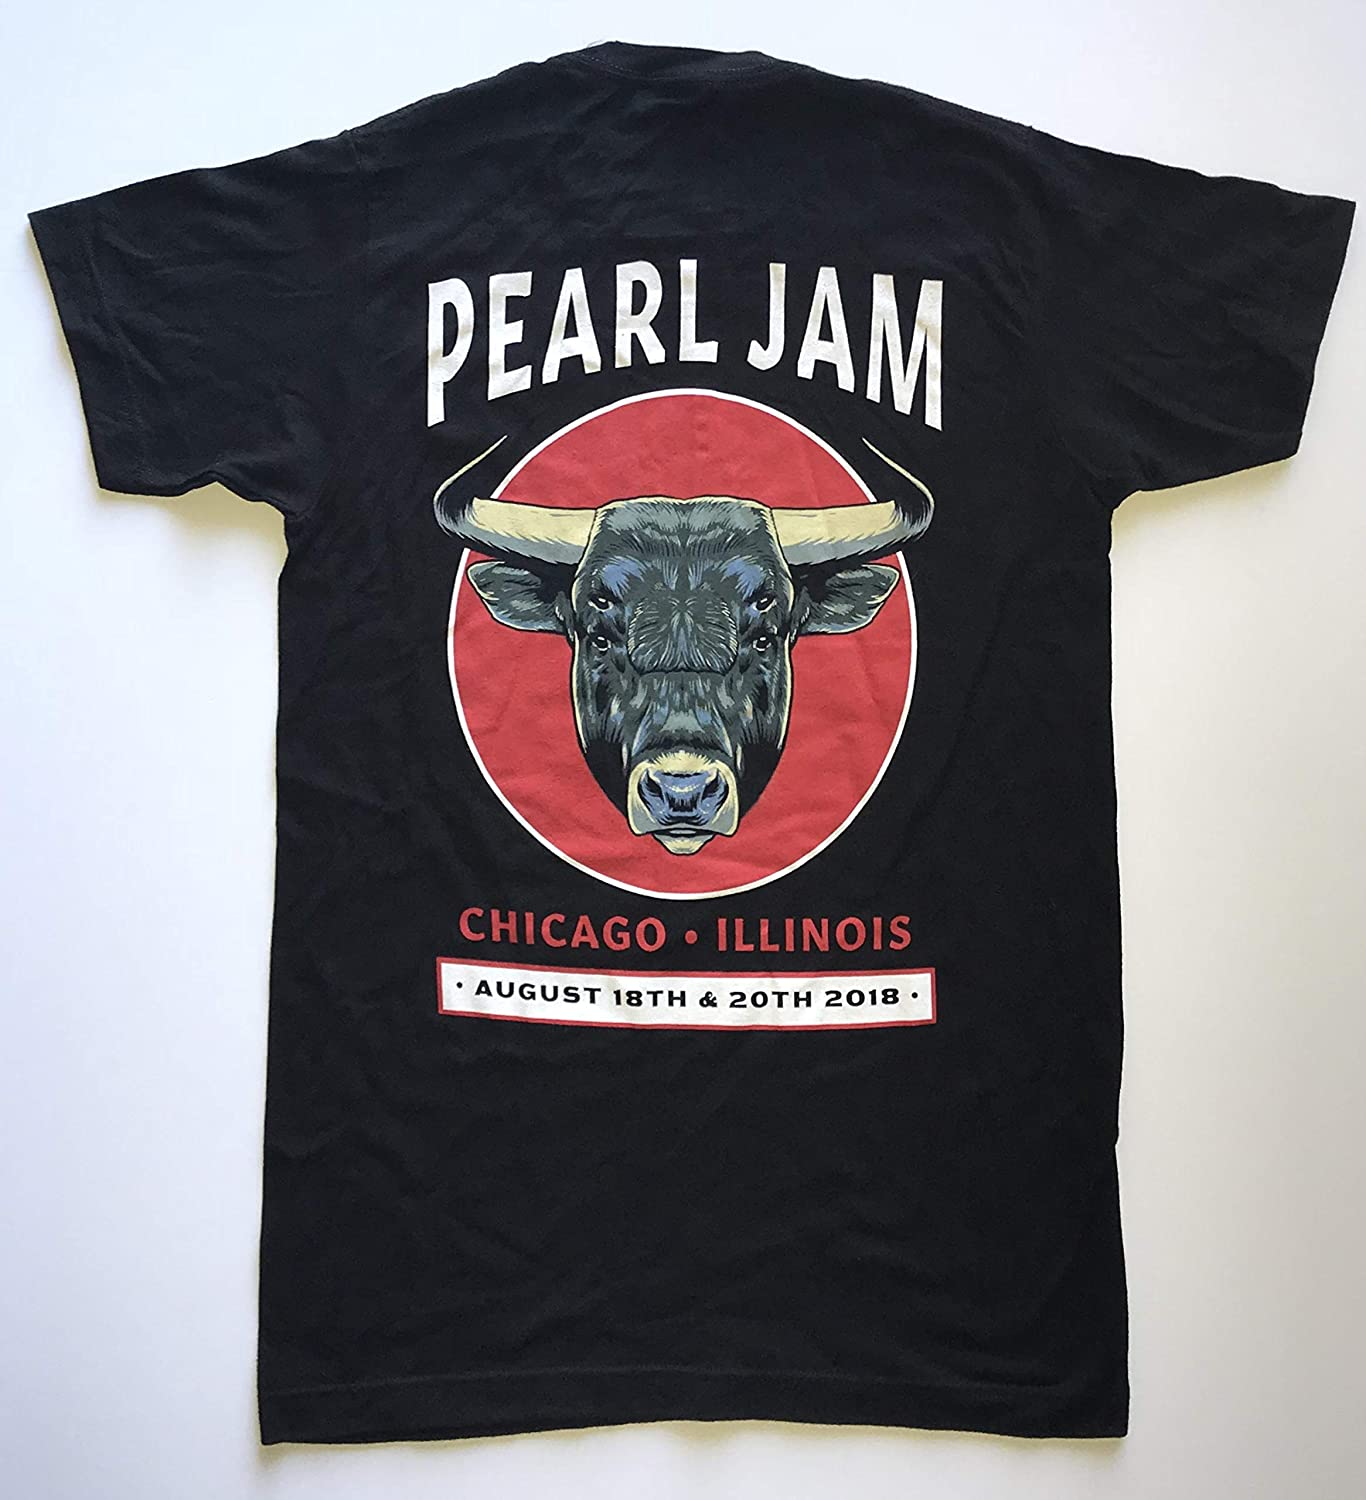 Pearl Jam wrigley field t shirt chicago 2018 tour xl 8/18 8/20 bulls logo